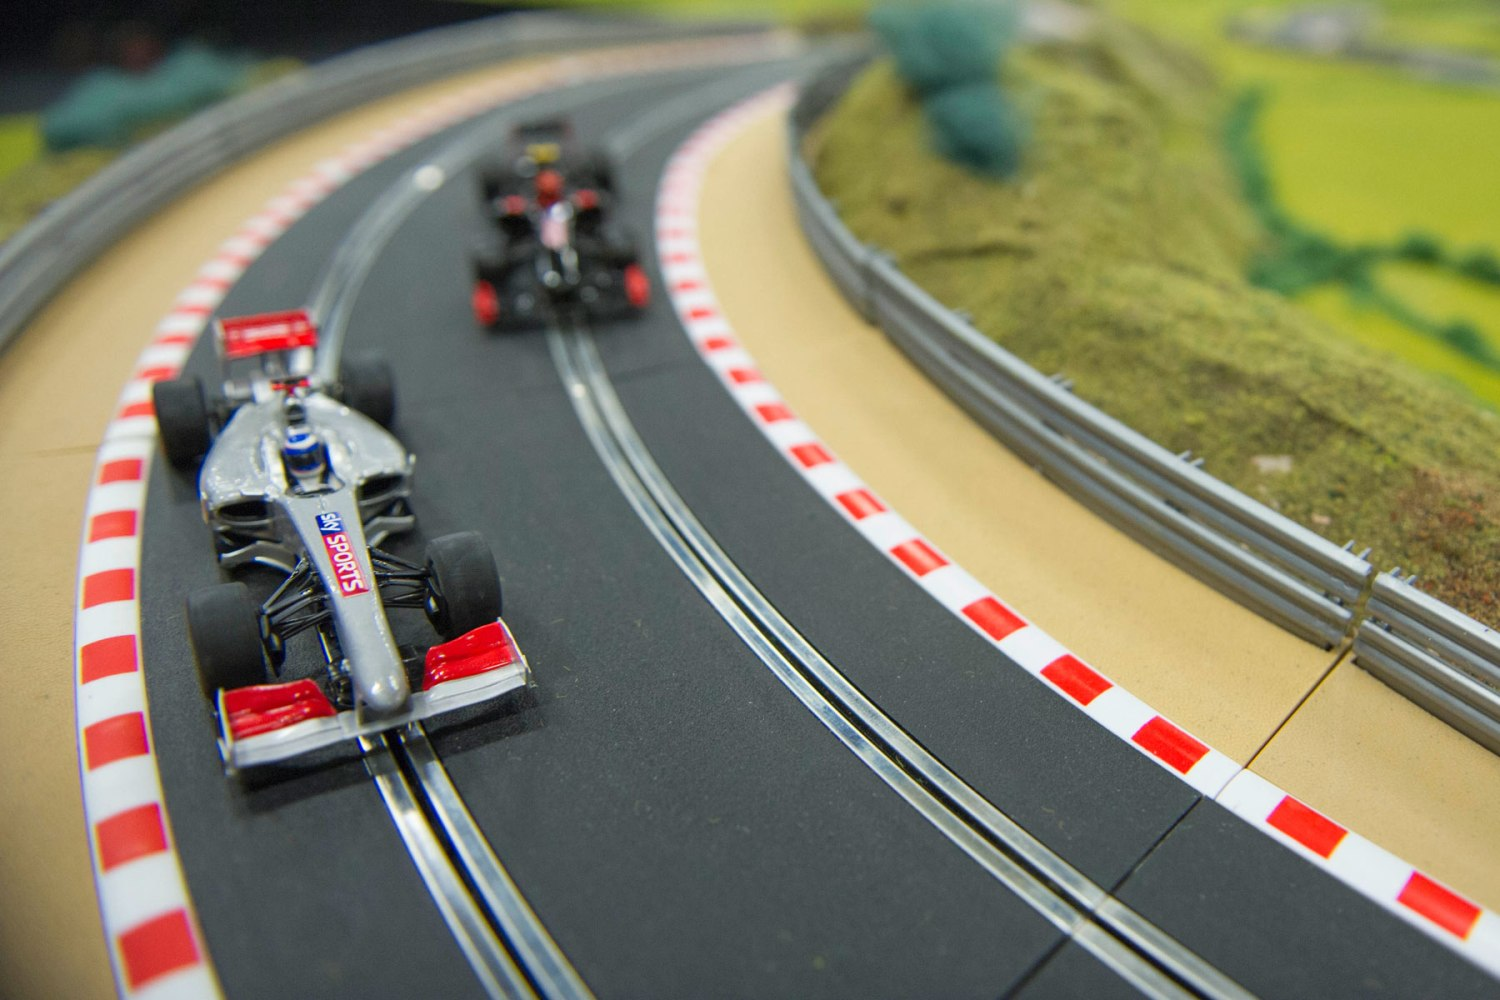 You can't beat Scalextric